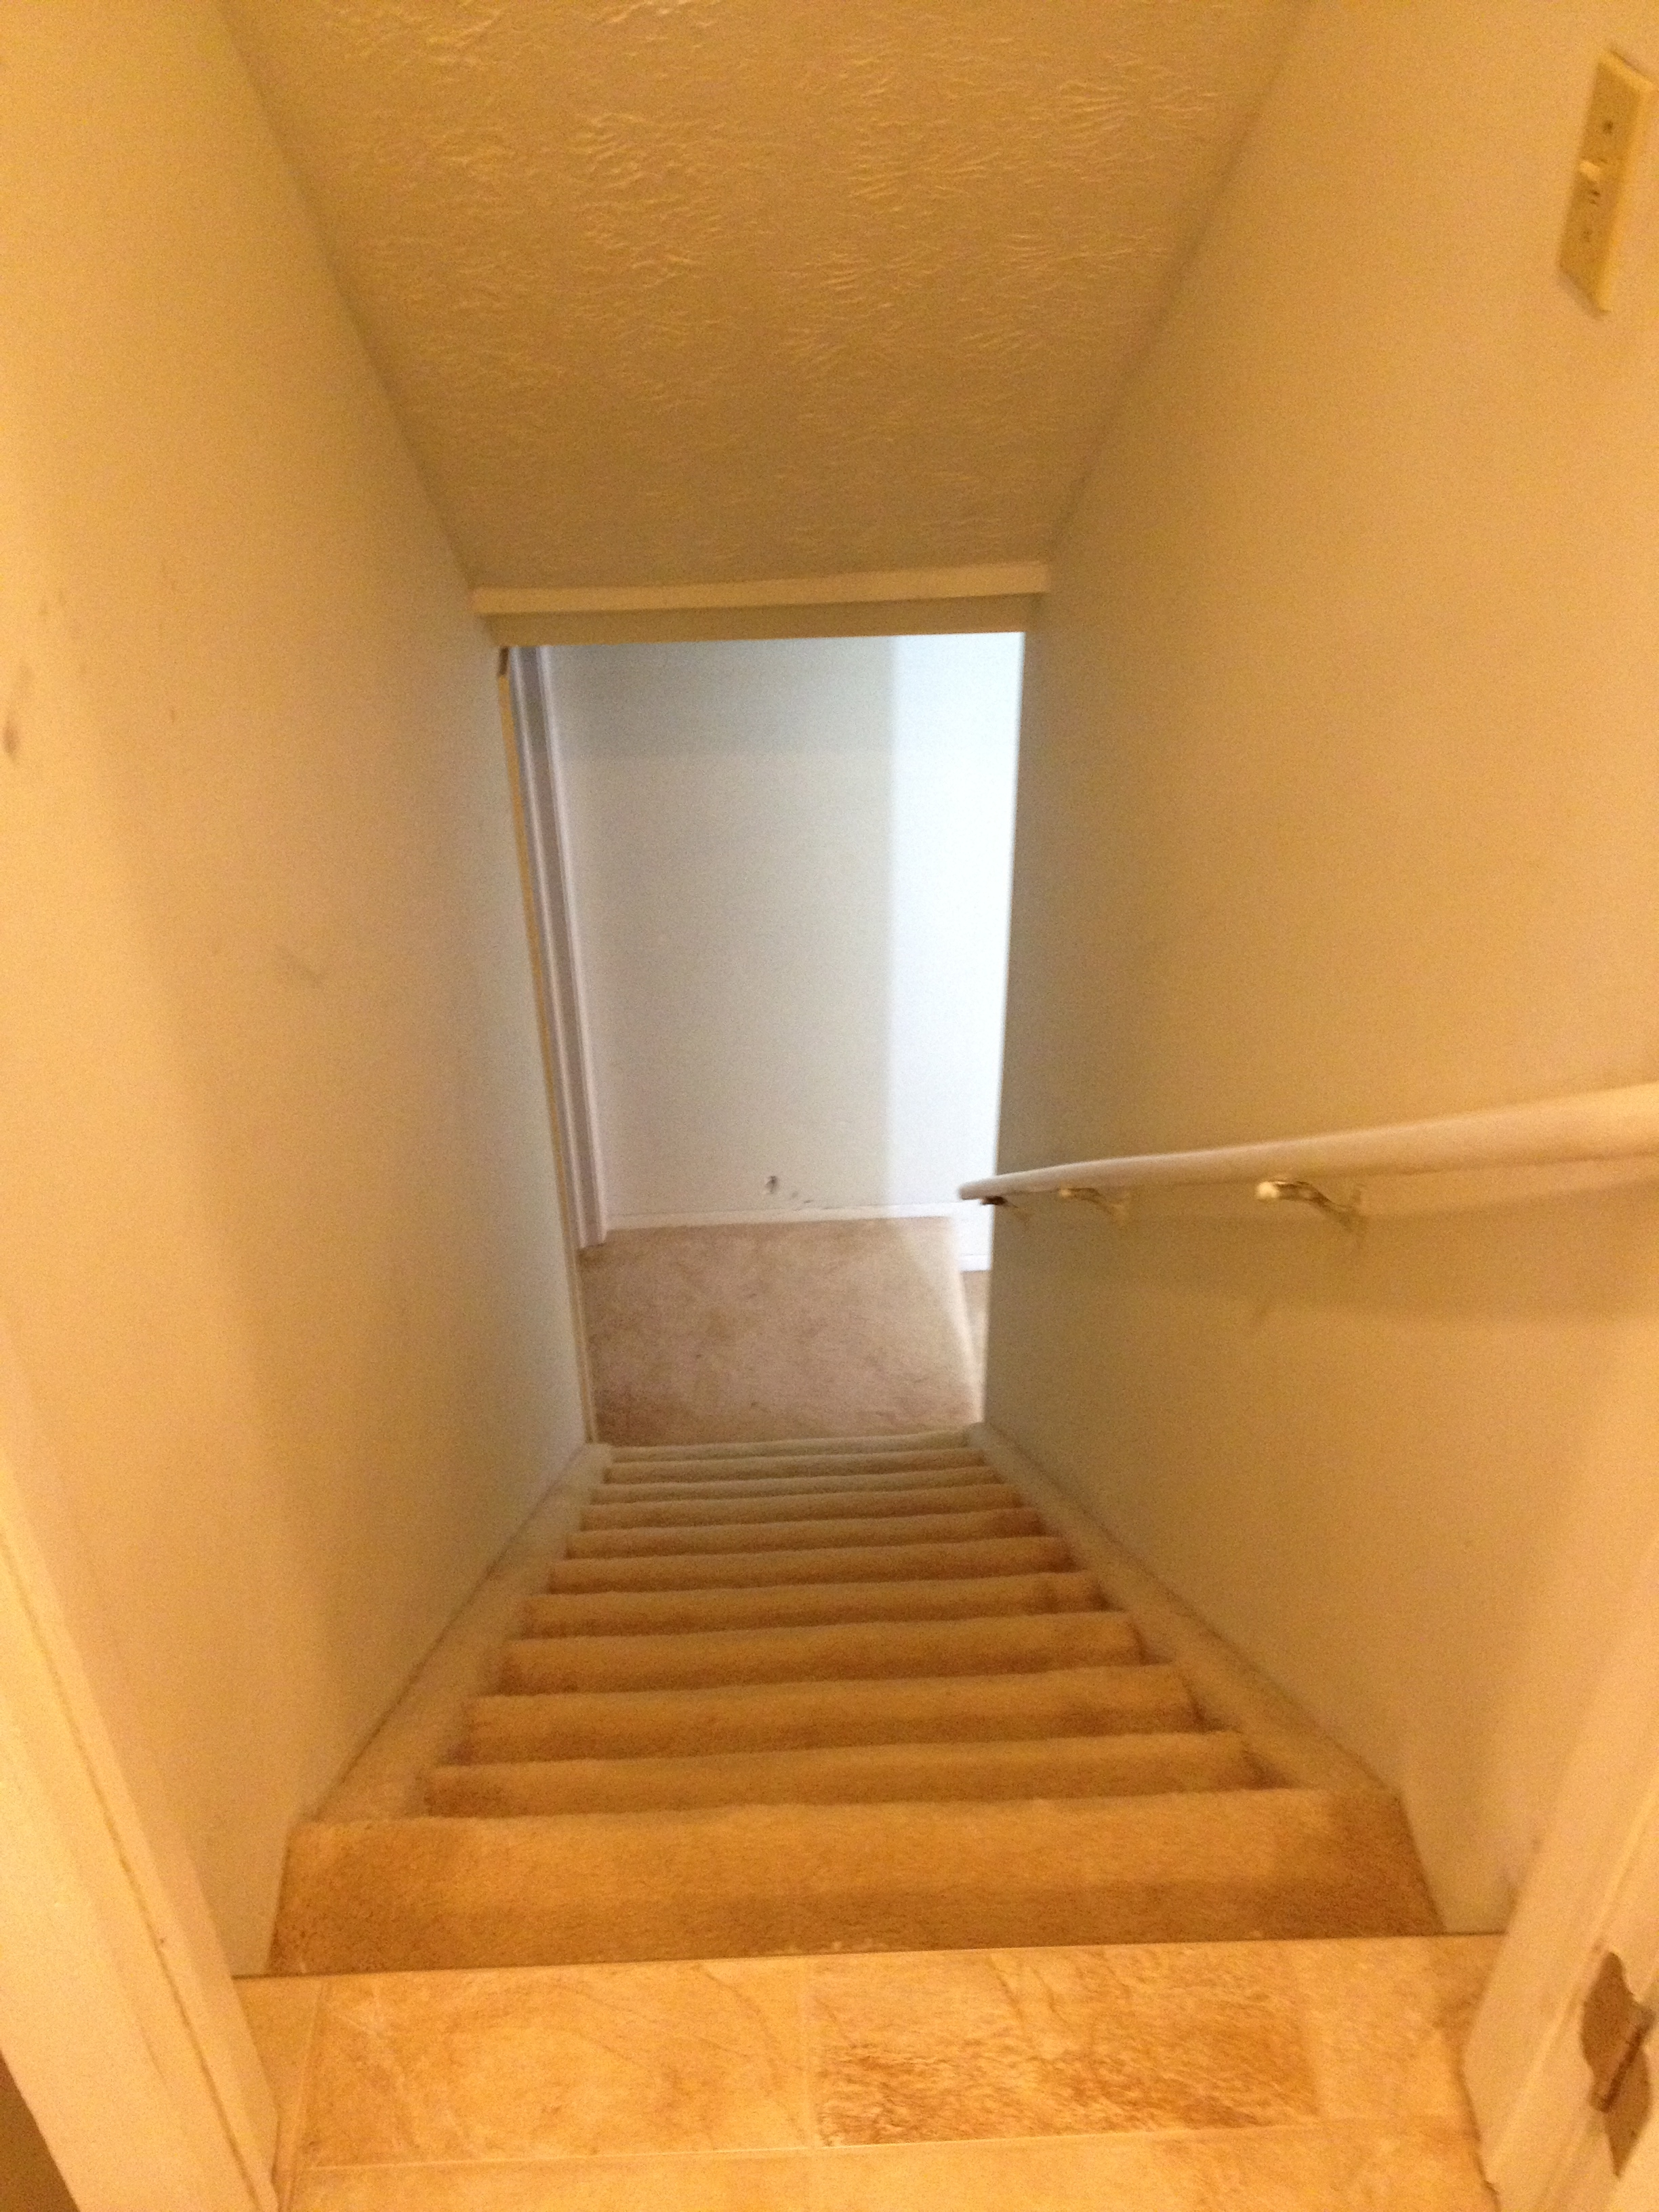 Linoleum Floor Maibe We Re Crazy | Stairs Down To Basement | Ranch House | Animated | Outside | Creepy | Funny